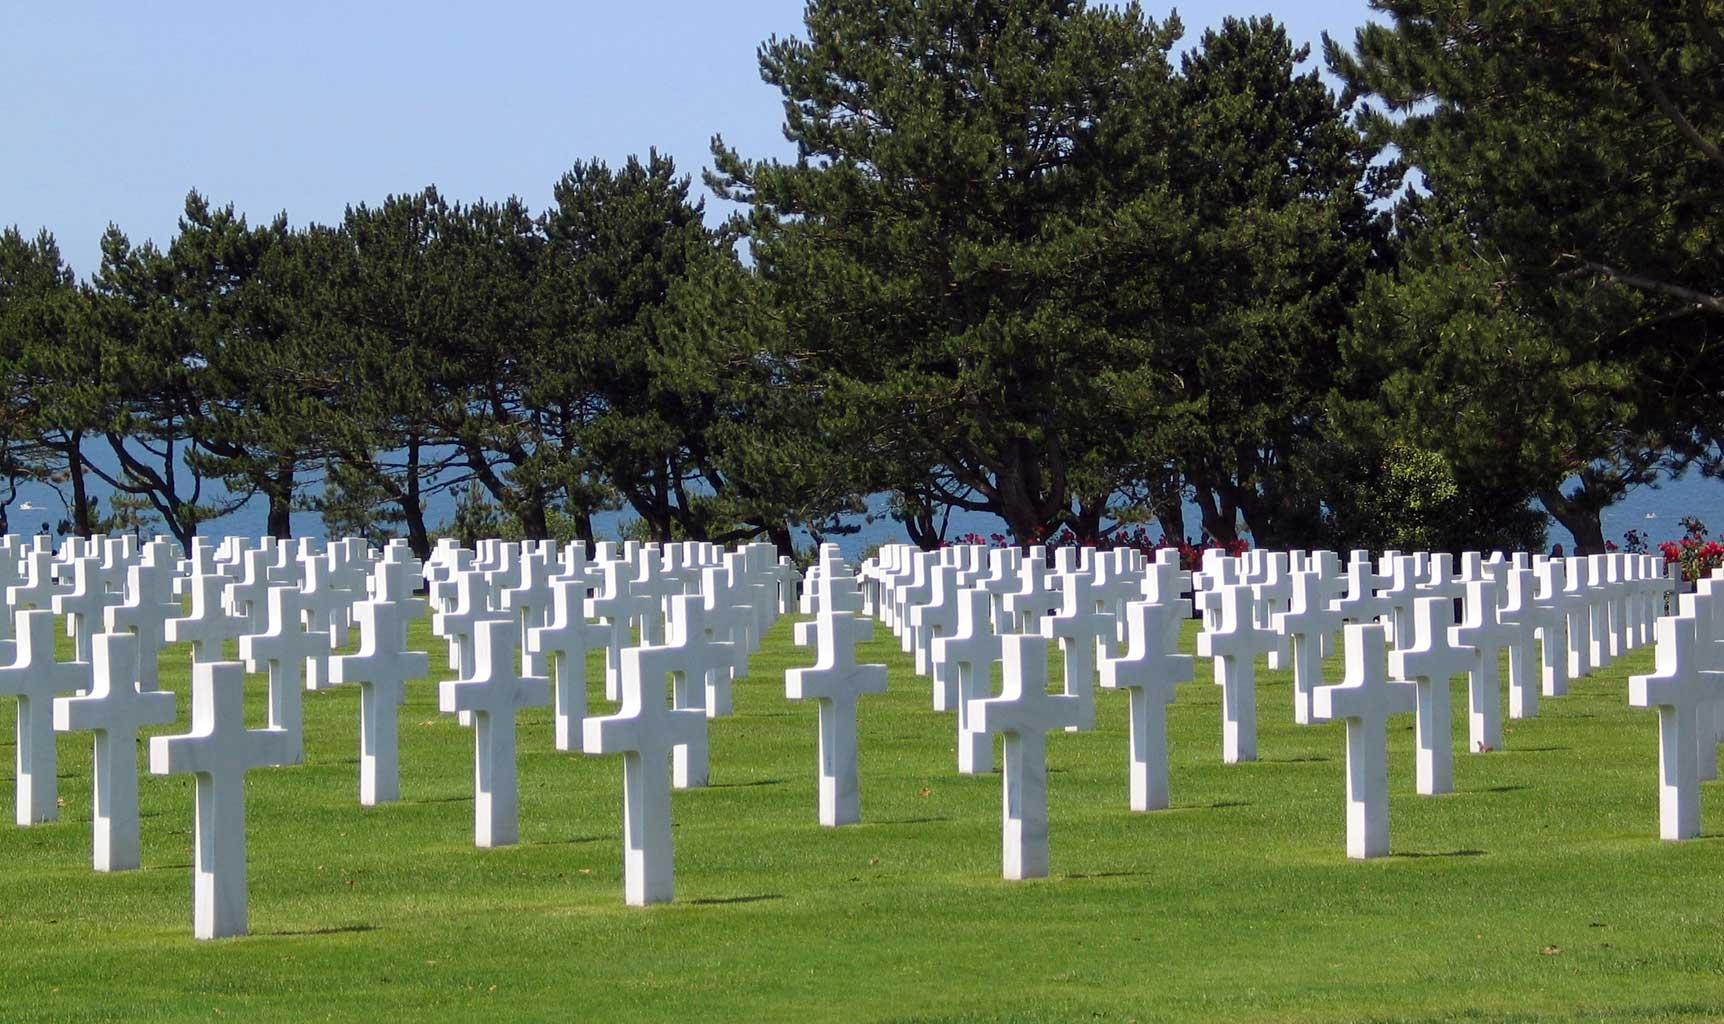 Remembering Fallen Soldiers, Remember, Memorial Day Poem